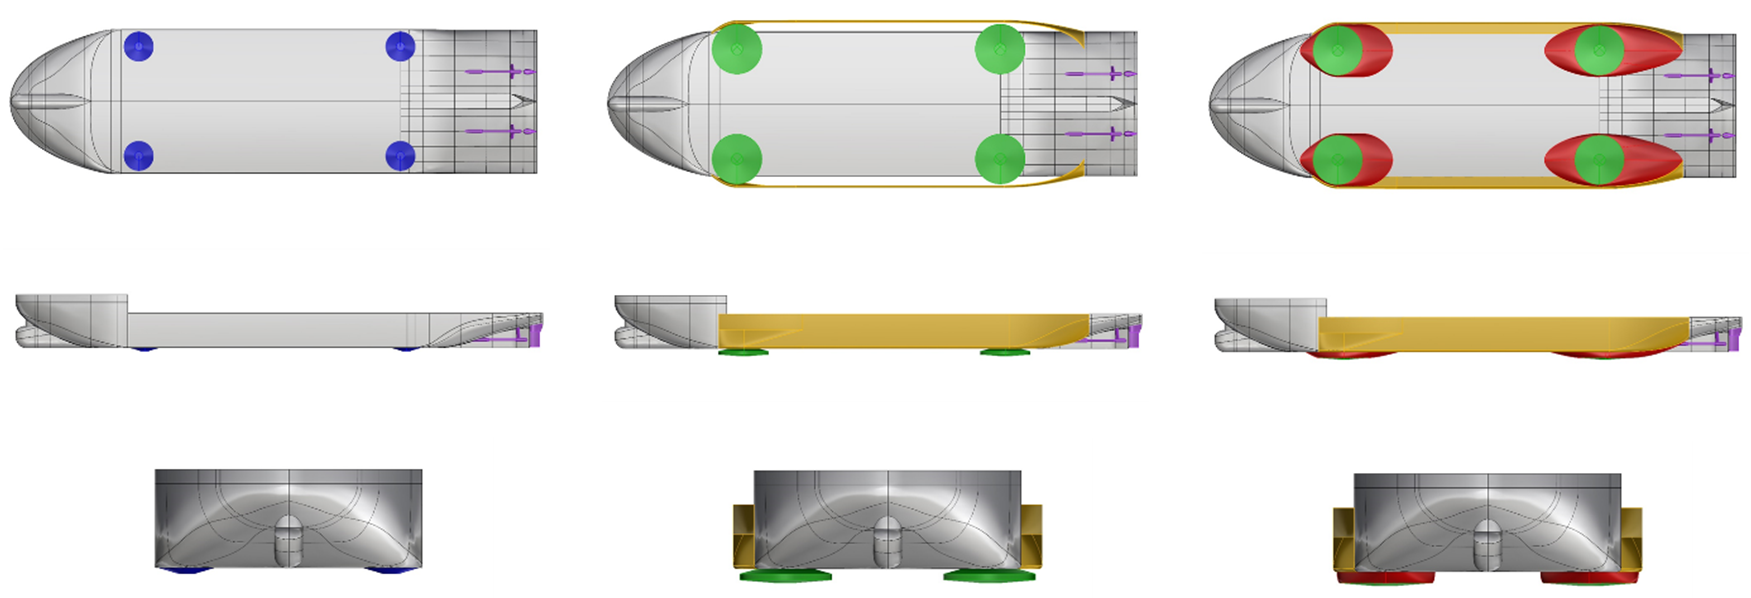 jack-up vessel configurations